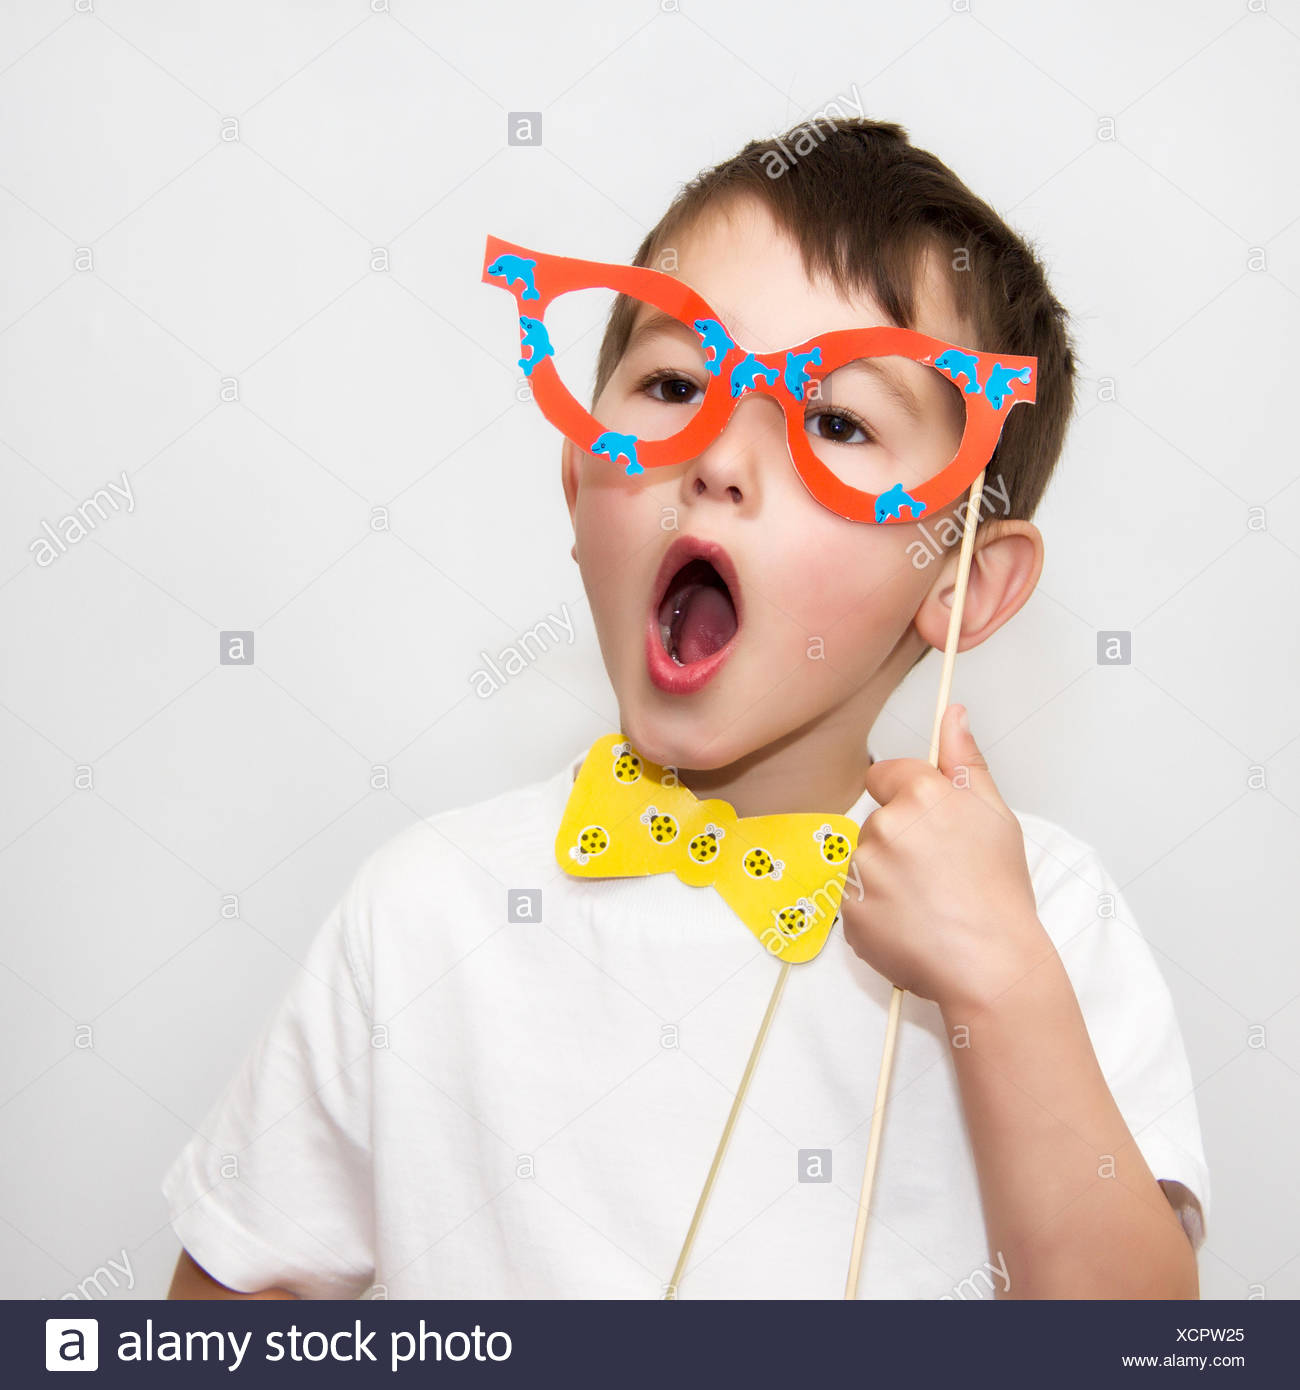 Boy with glasses and bow-tie masks - Stock Image